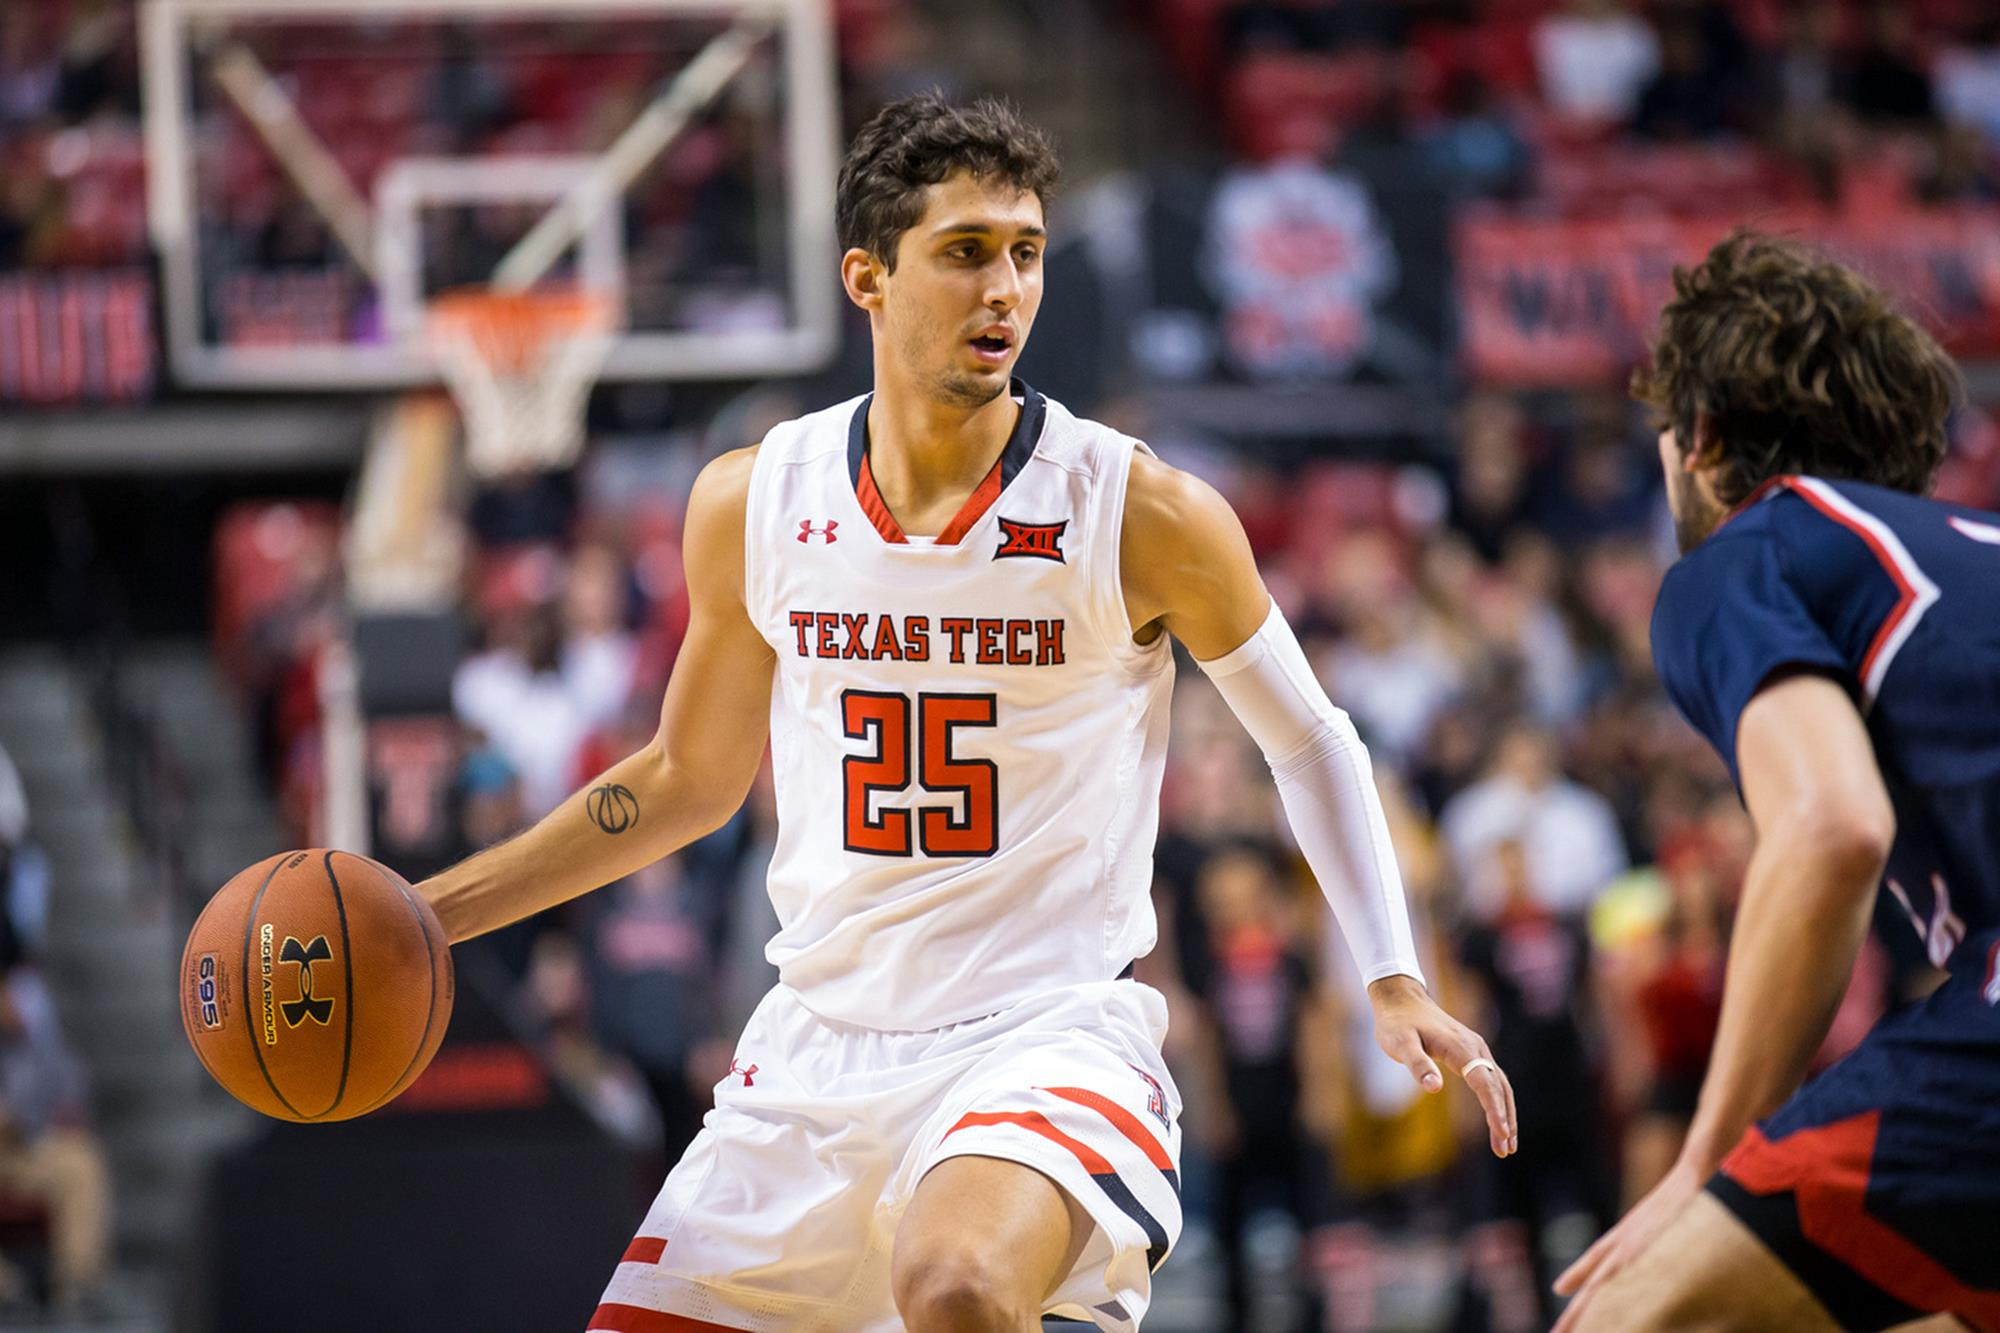 red raiders picked seventh in preseason big 12 poll - texas tech